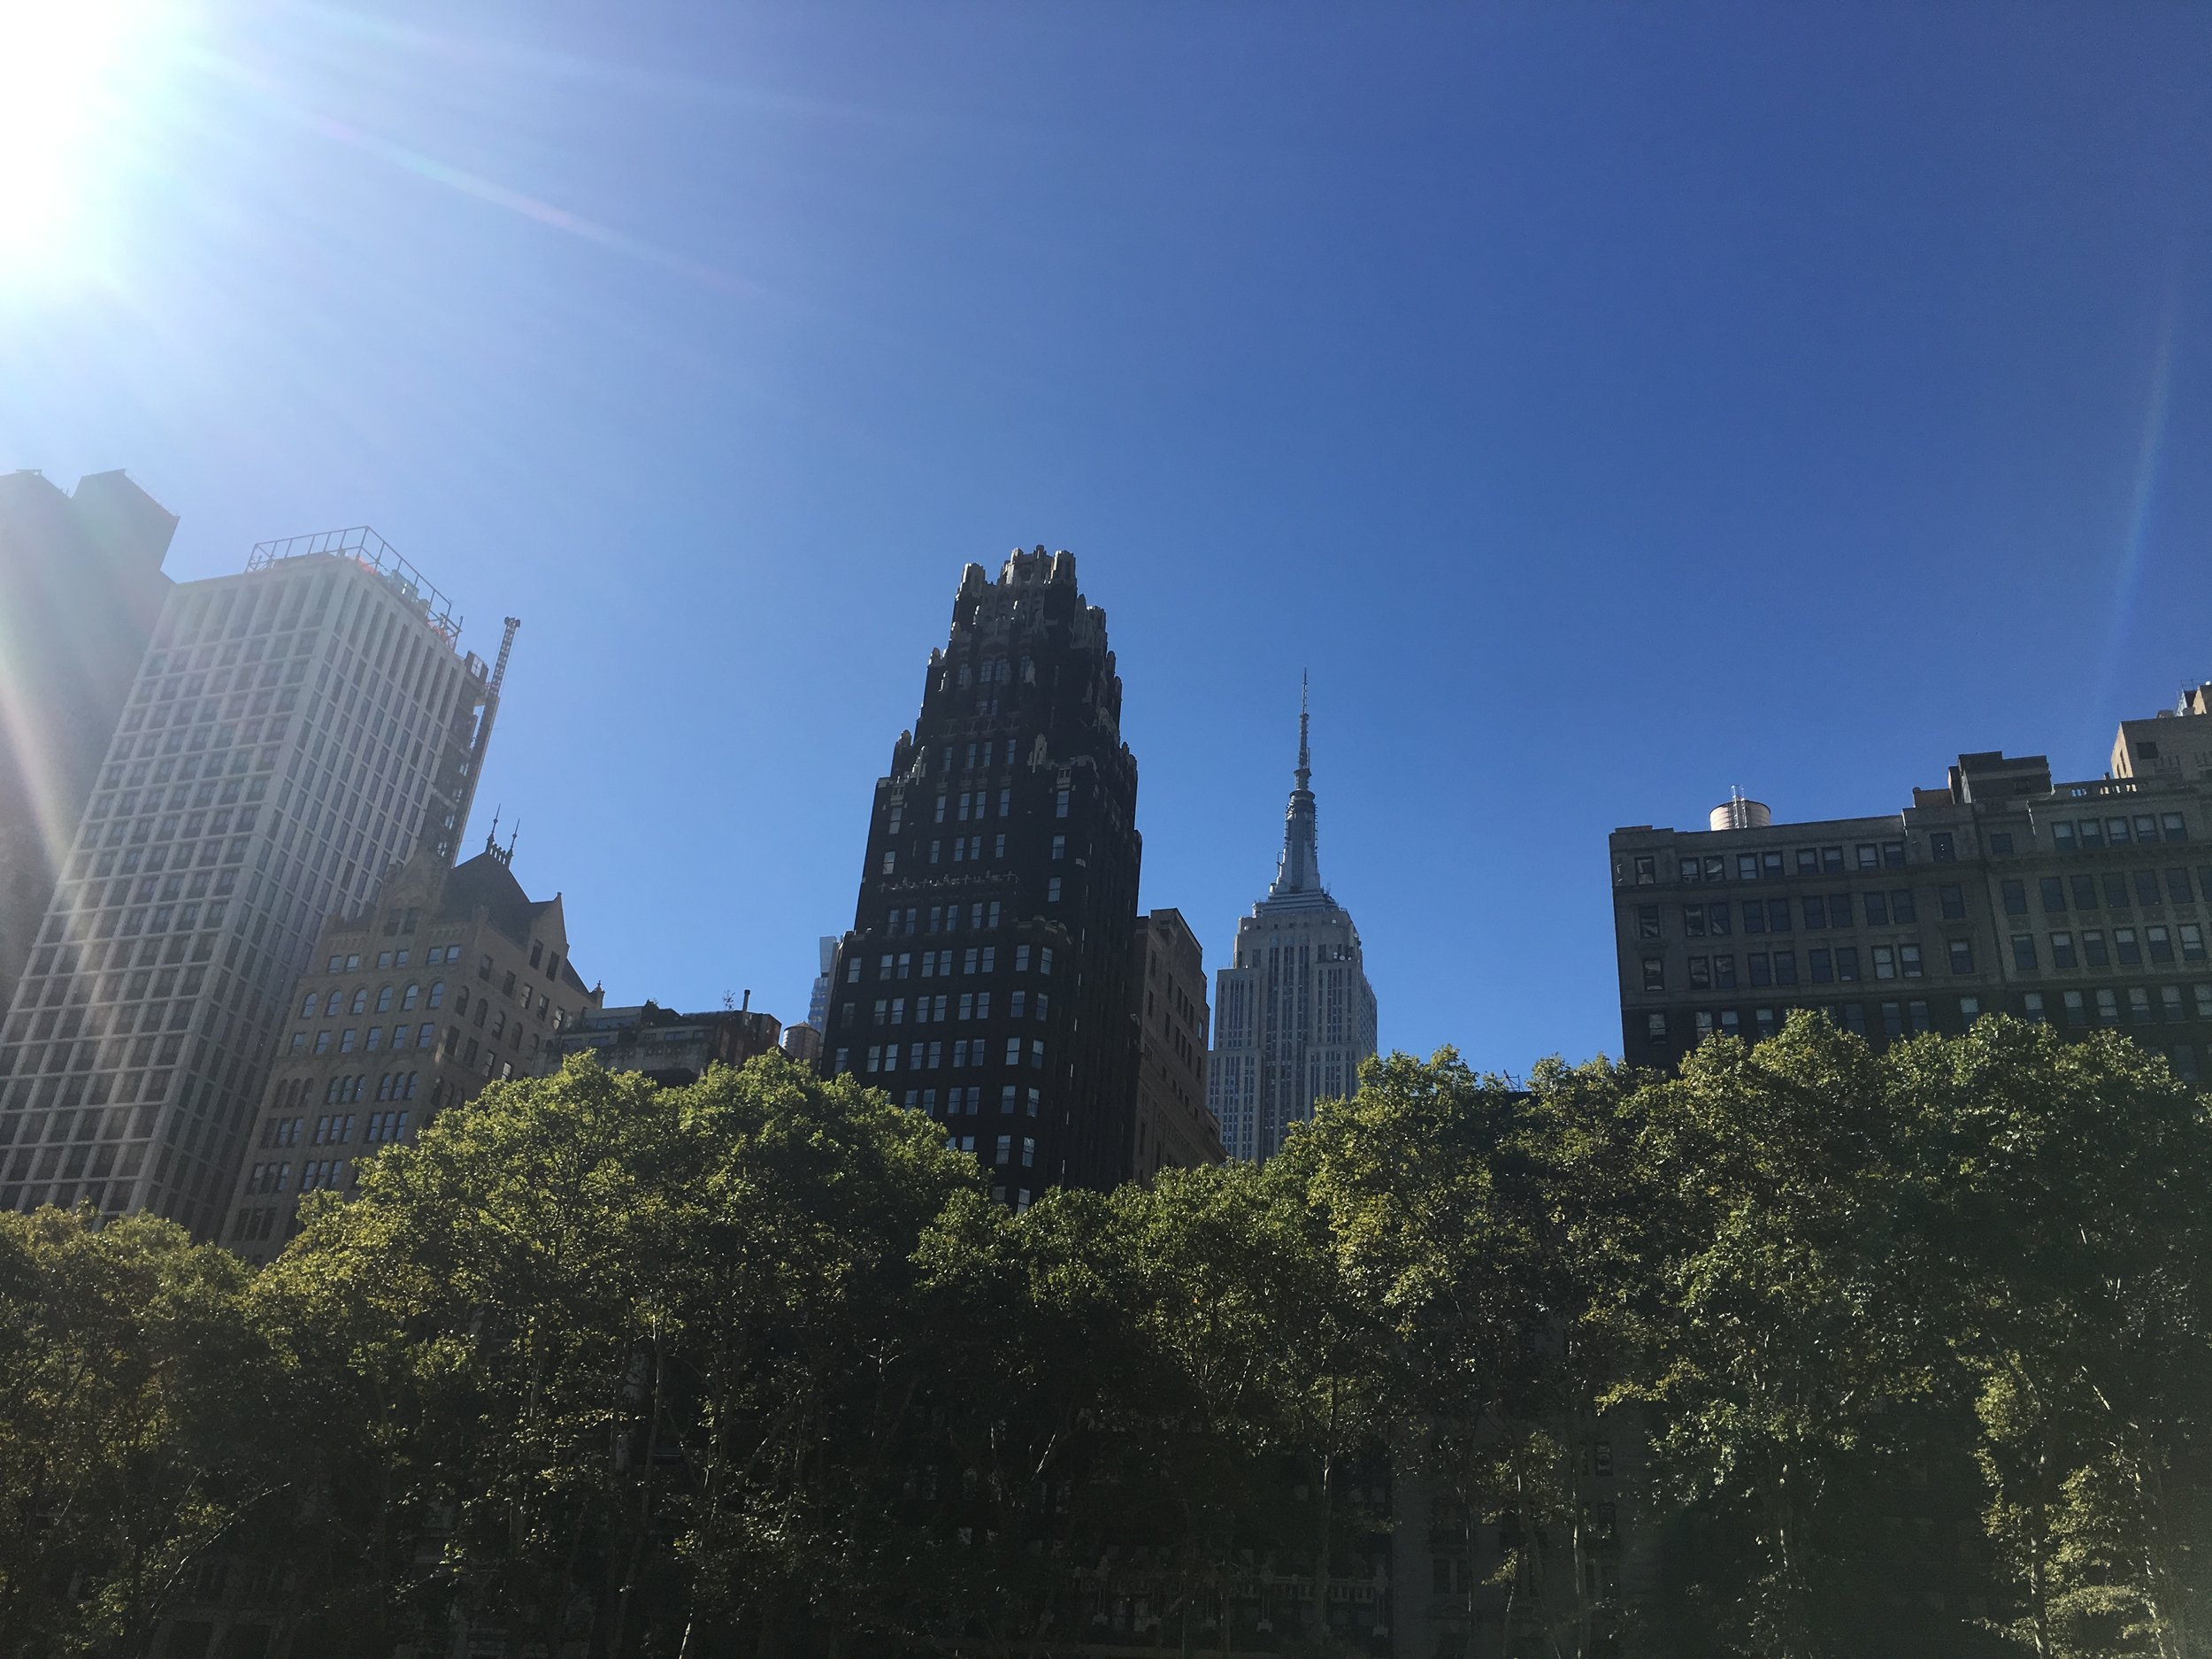 A glimpse of the Empire State building on a sunny day in New York.